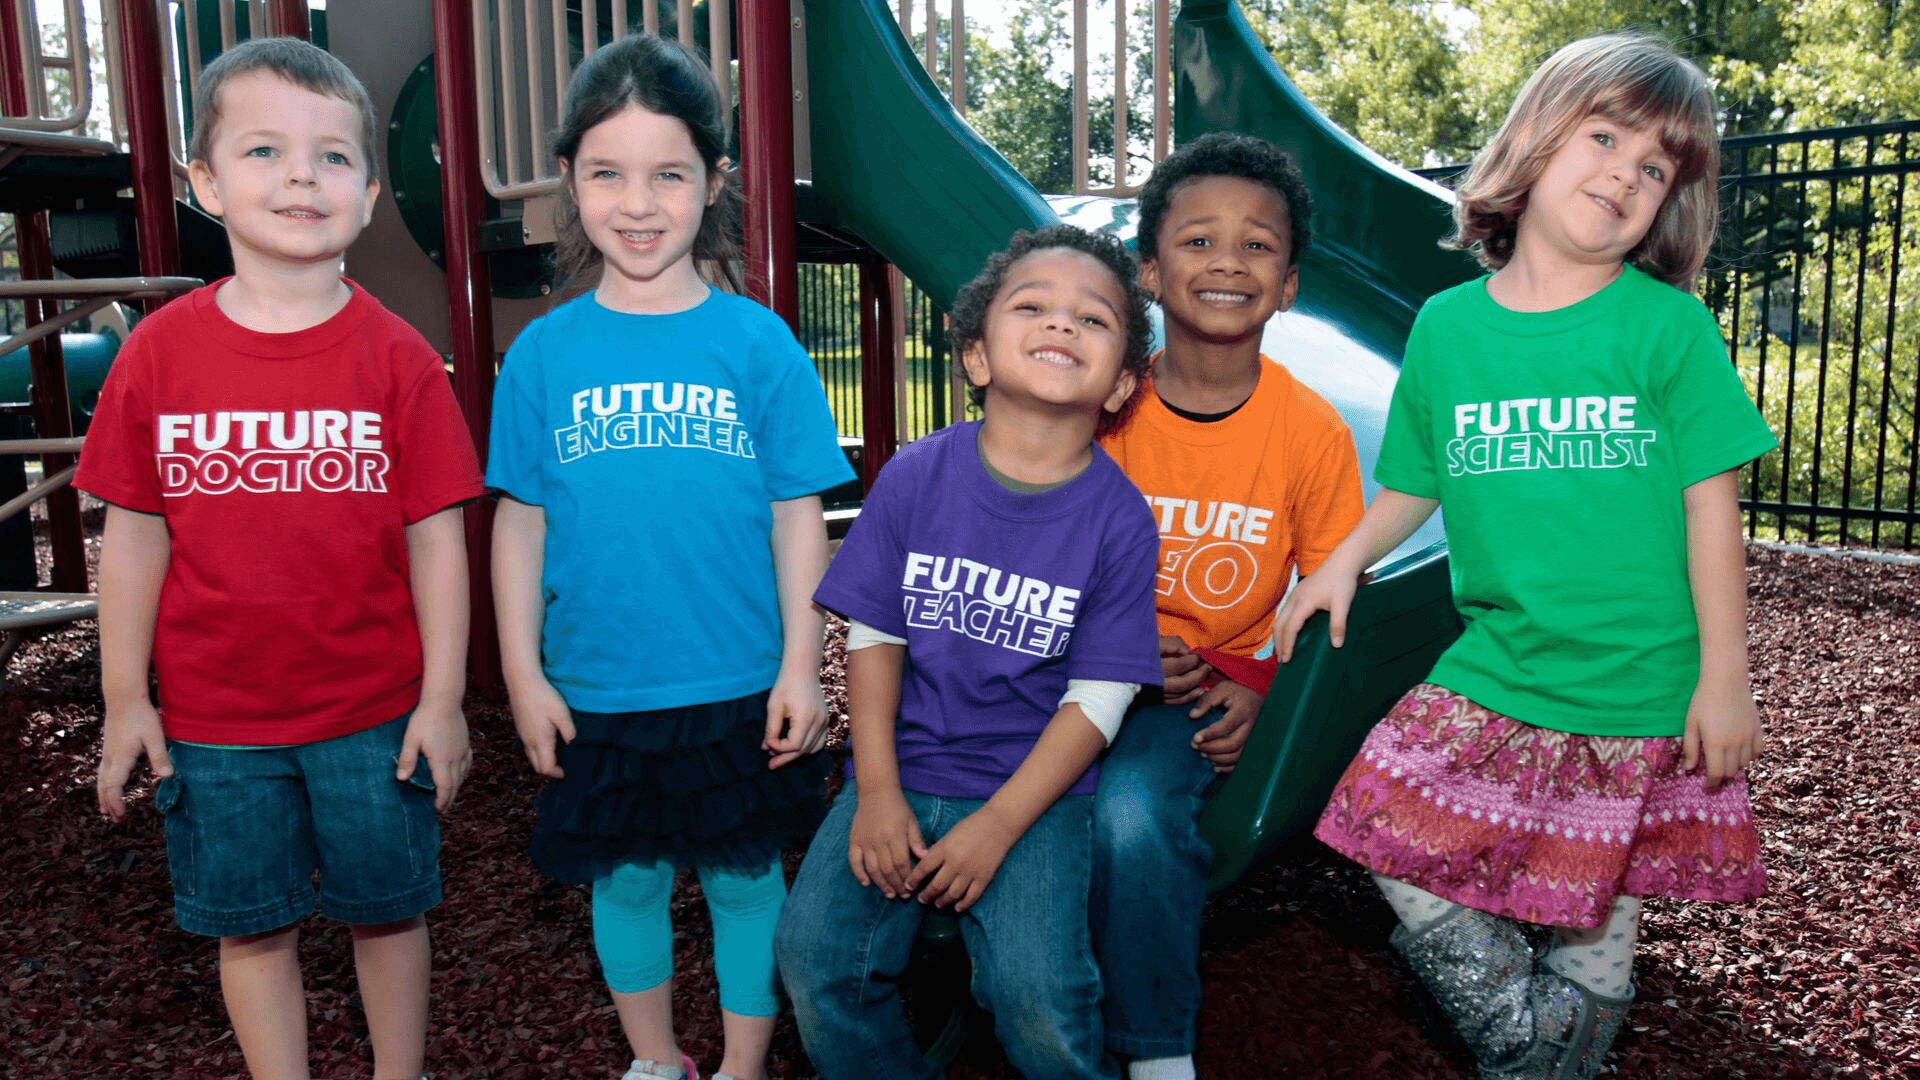 Five preschool students smiling for a photo on the Science Center's Playground